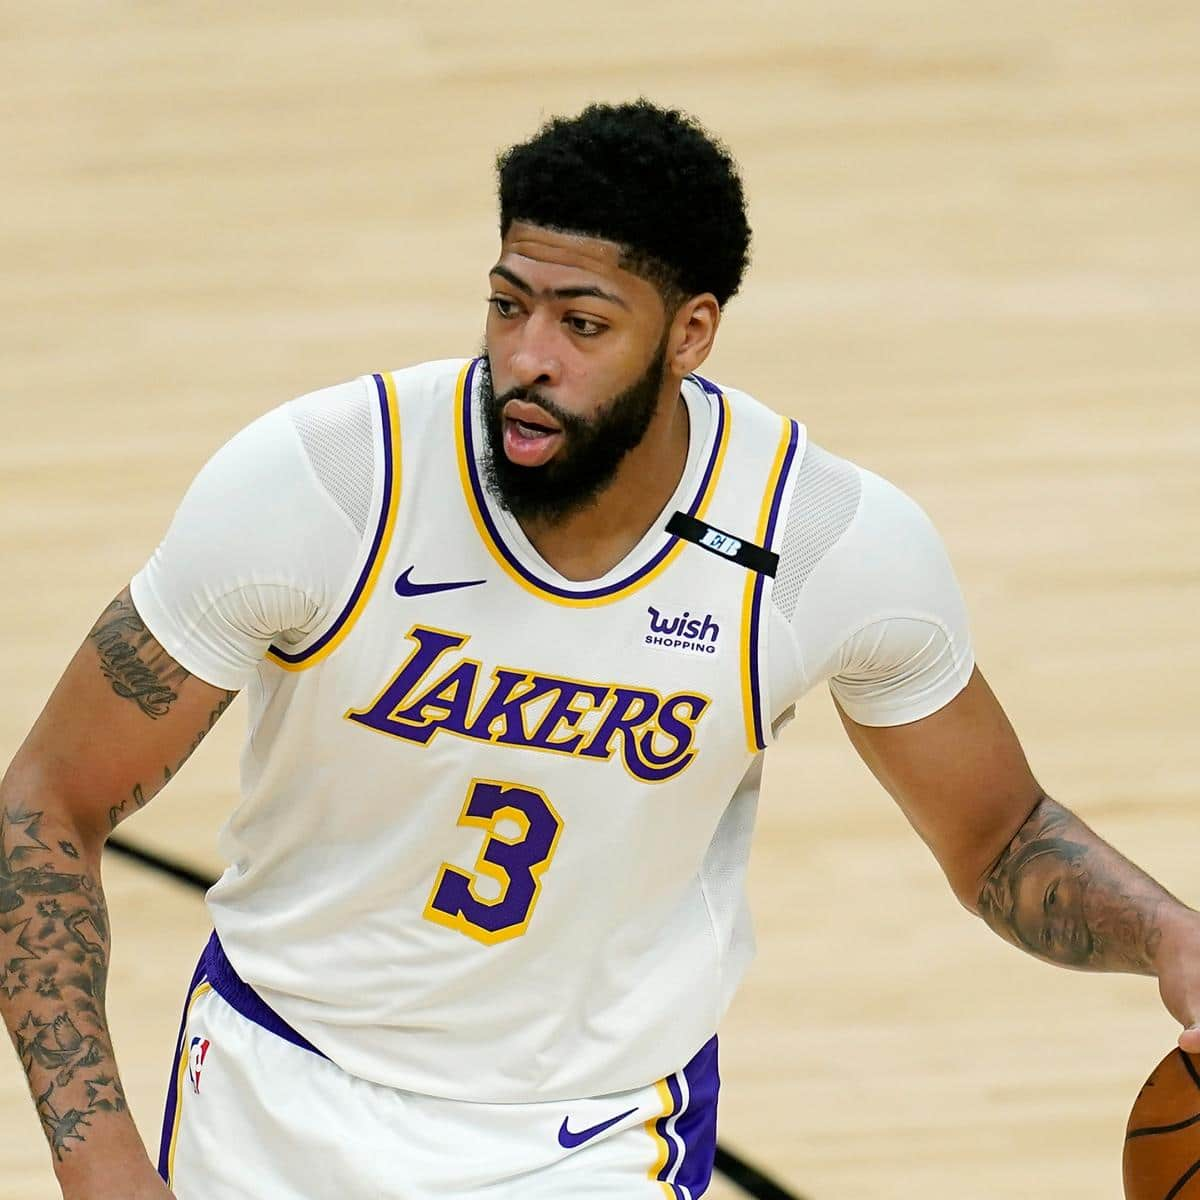 lakers-anthony-davis-will-play-in-game-4-vs-suns-no-matter-knee-injury.jpg